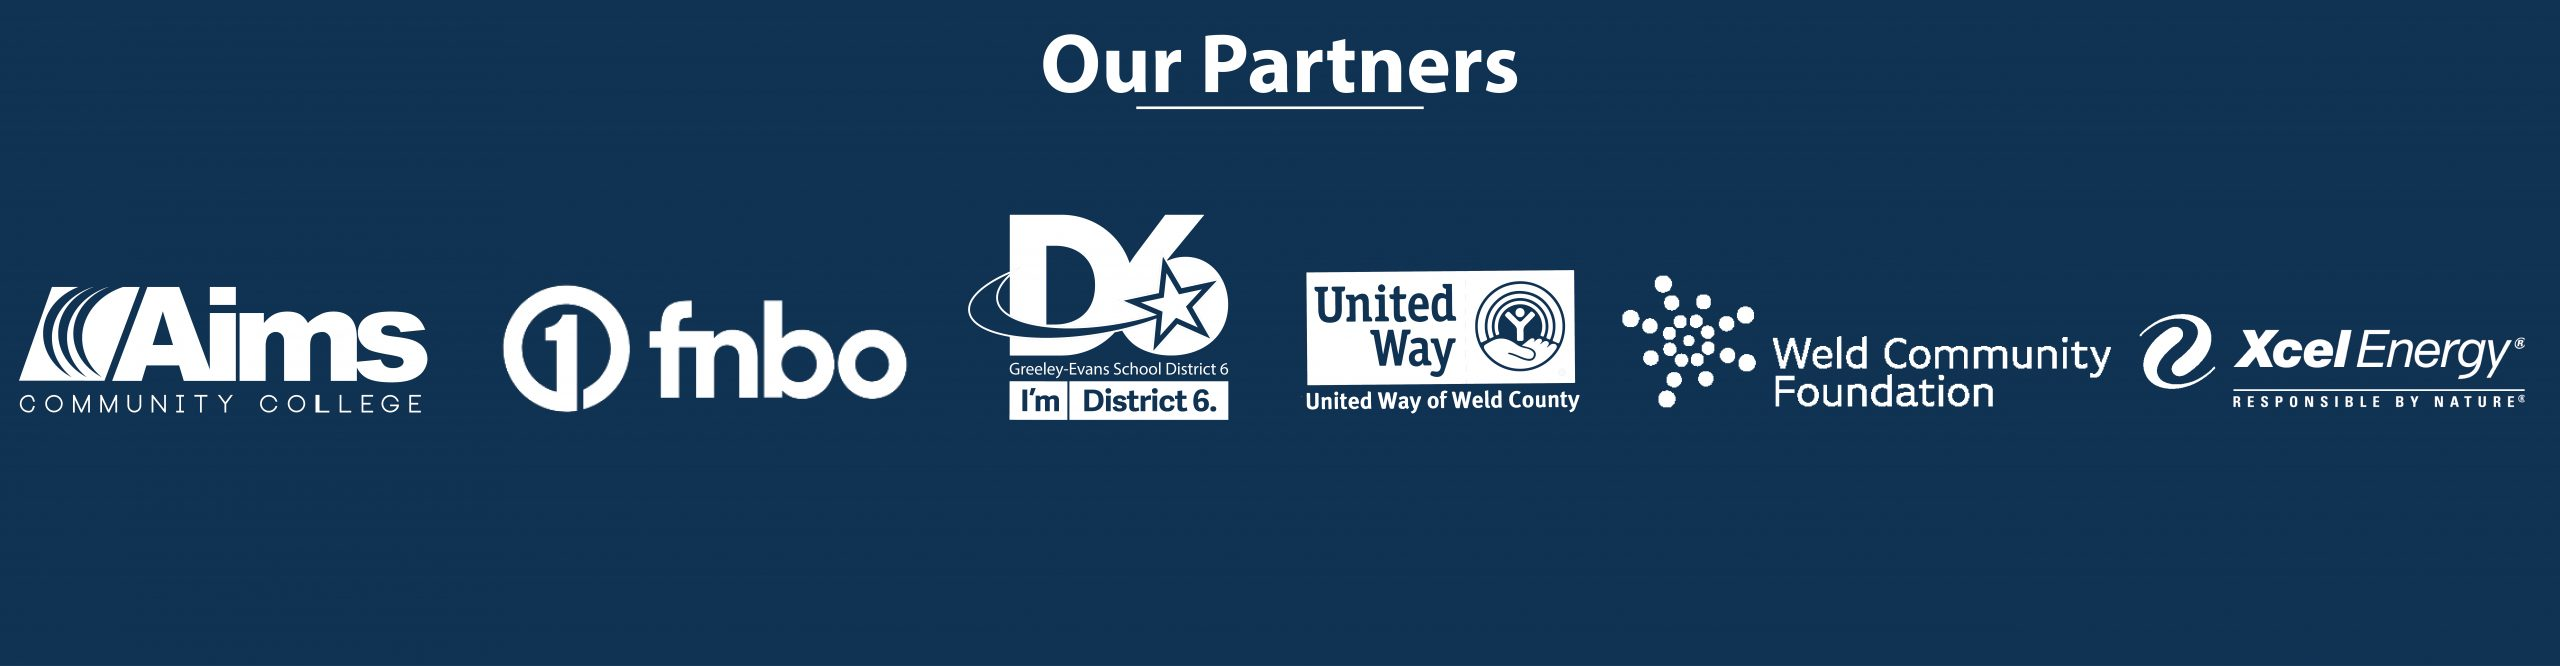 List of Partner logs: Aims Community College, First National Bank of Omaha, Greeley-Evans School District 6, United Way of Weld County, Weld Community Foundation, and Xcel Energy